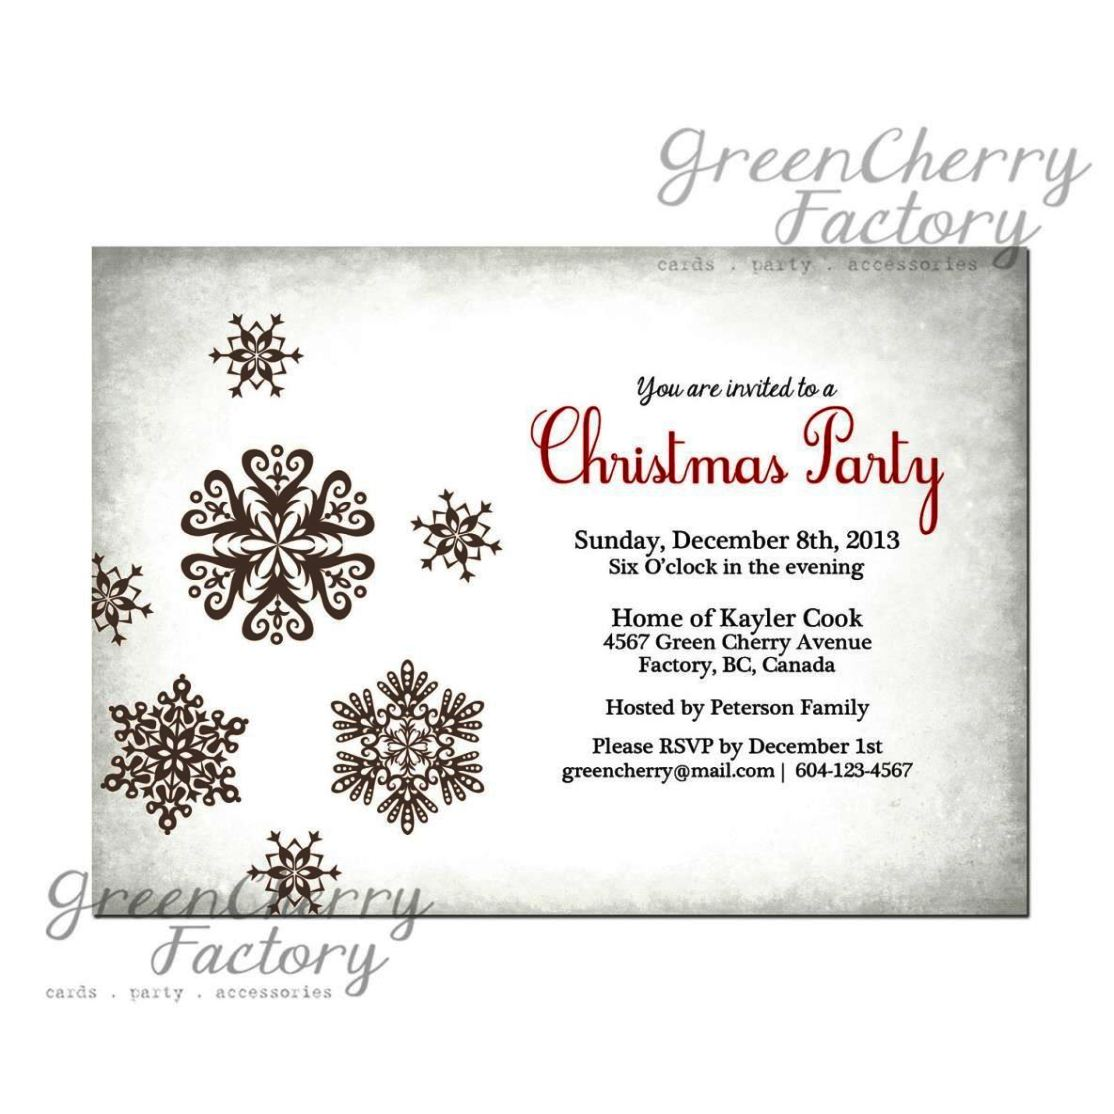 corporate christmas party invitation templates sampletemplatess sampletemplatess. Black Bedroom Furniture Sets. Home Design Ideas